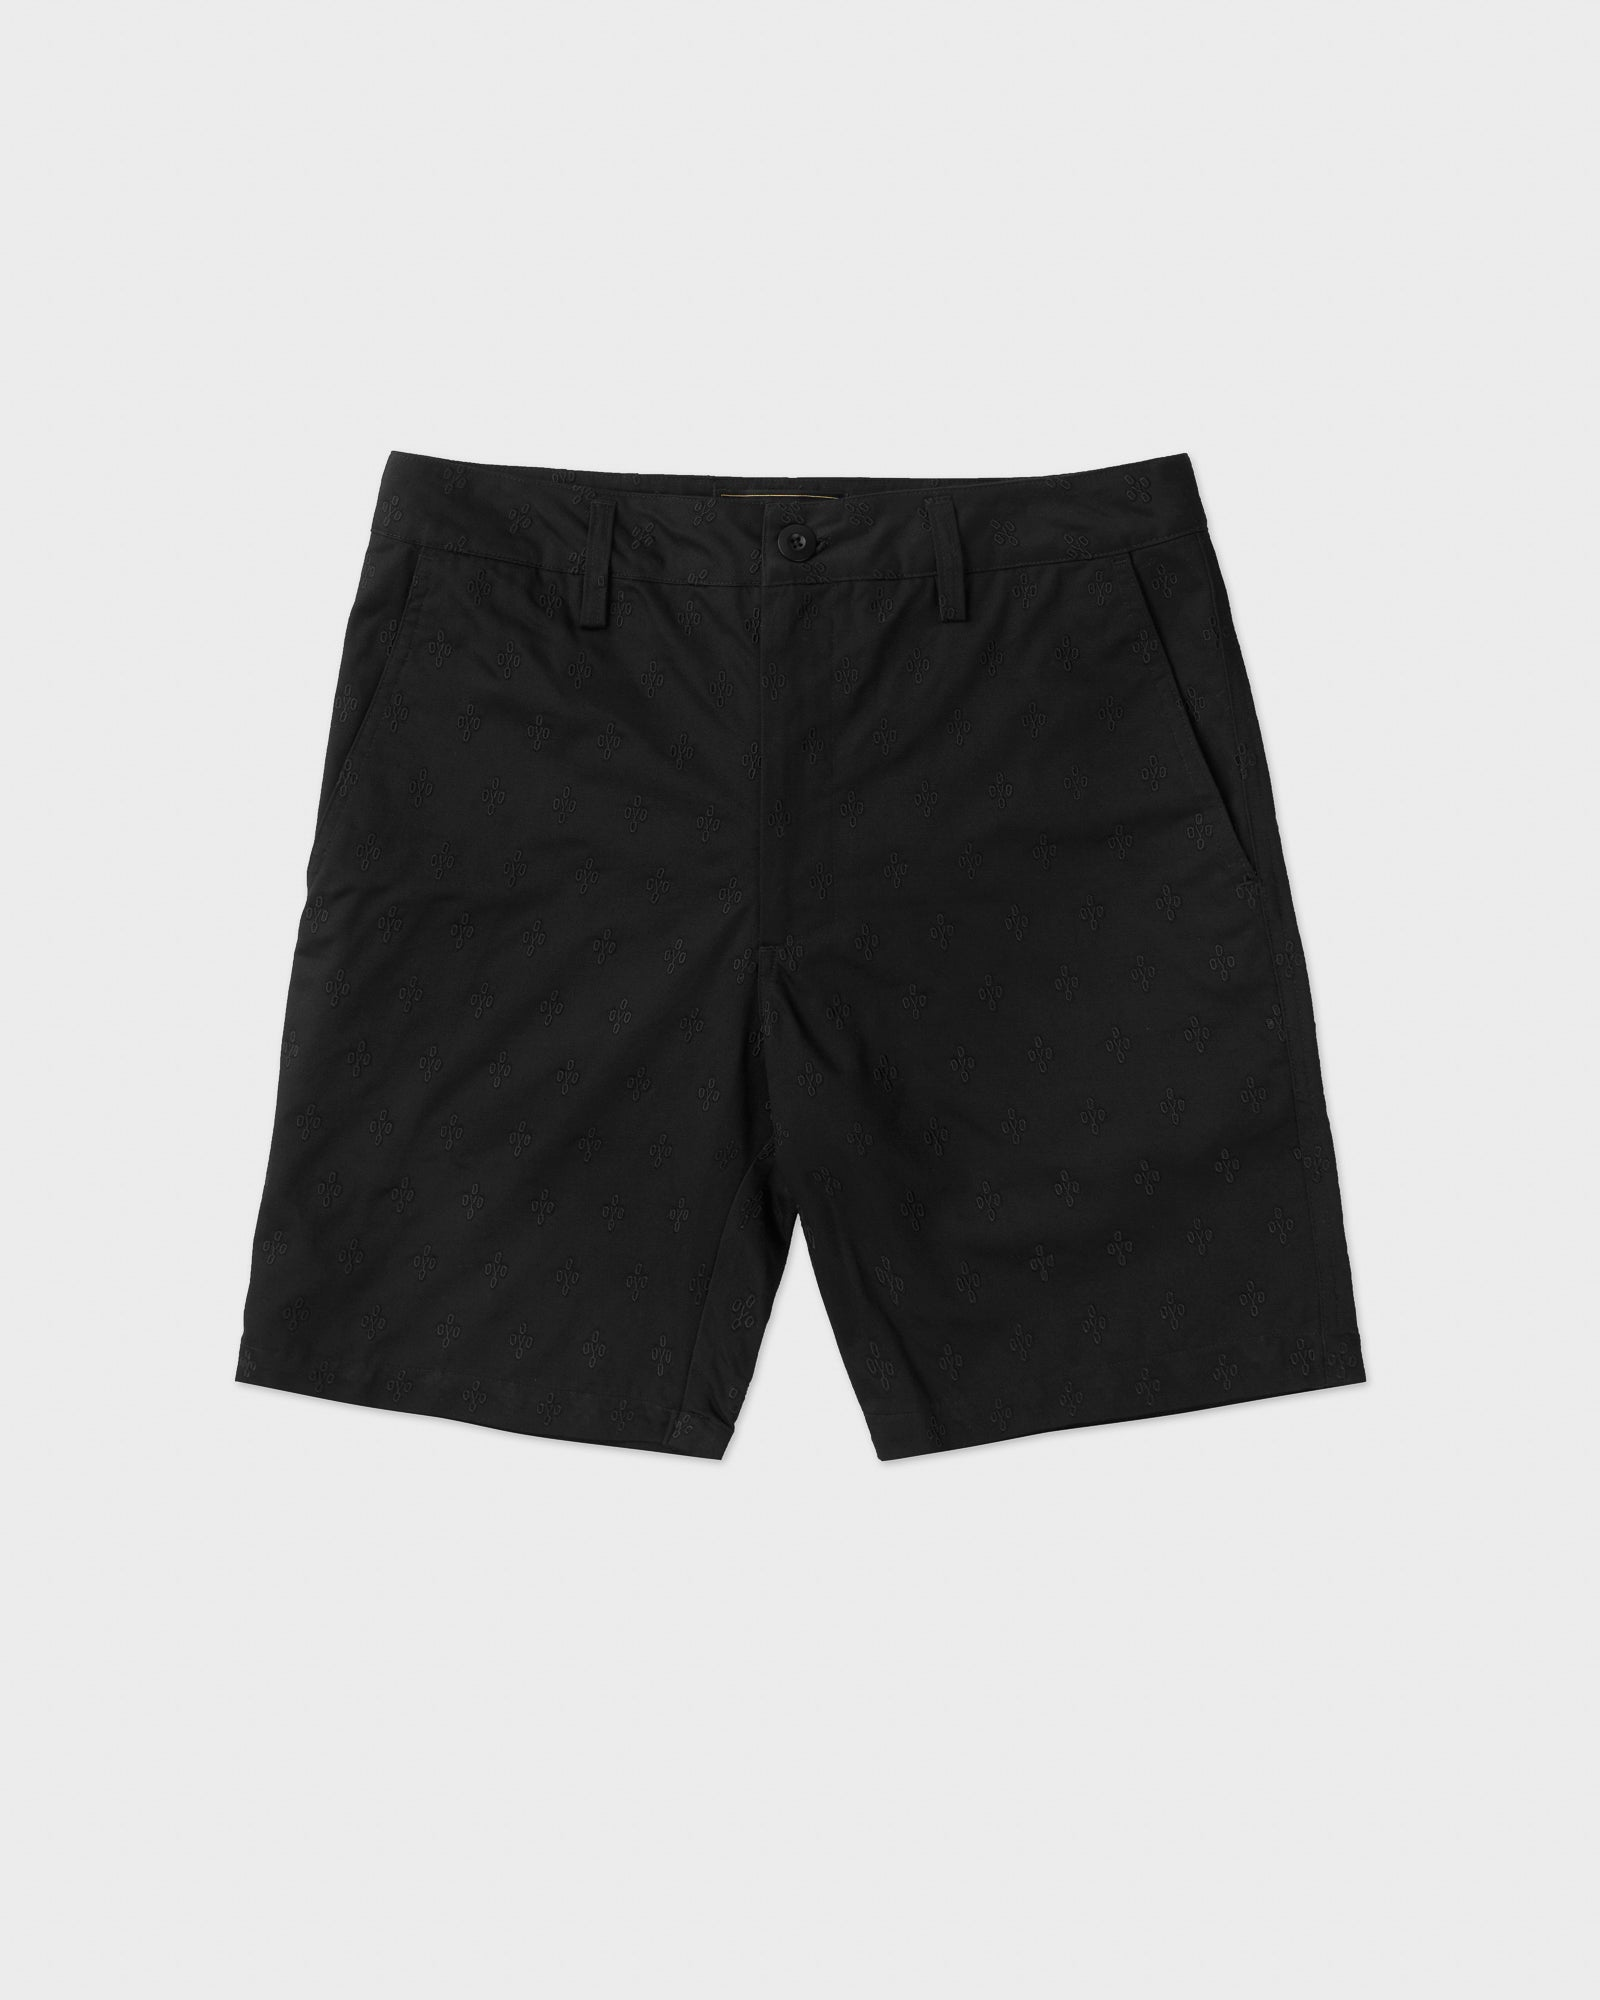 MONOGRAM EMBROIDERED SHORT - BLACK IMAGE #1